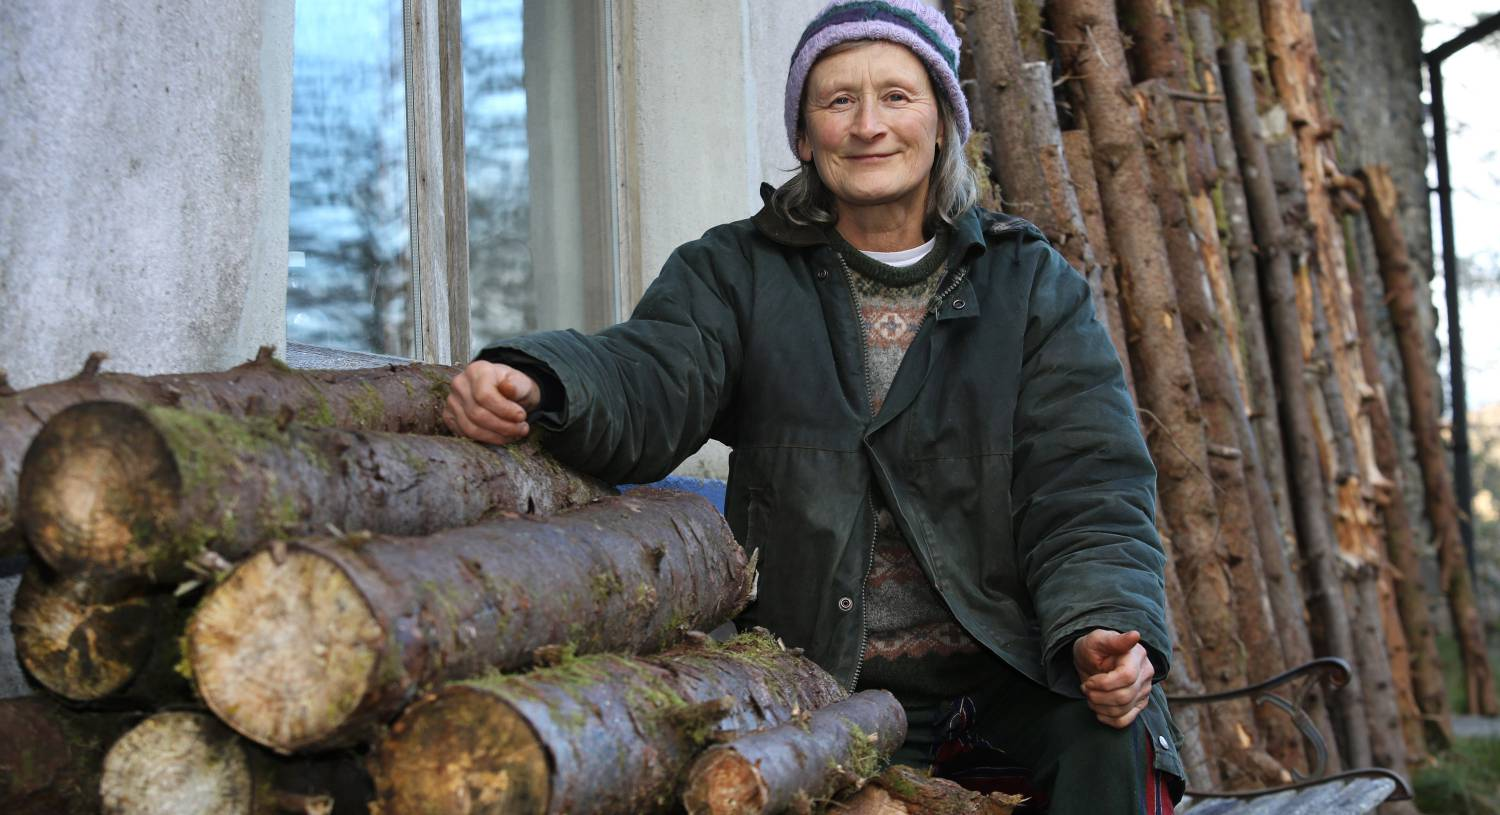 'Conscientious protector with chainsaw in one hand and burning log in the other' convicted of stealing wood